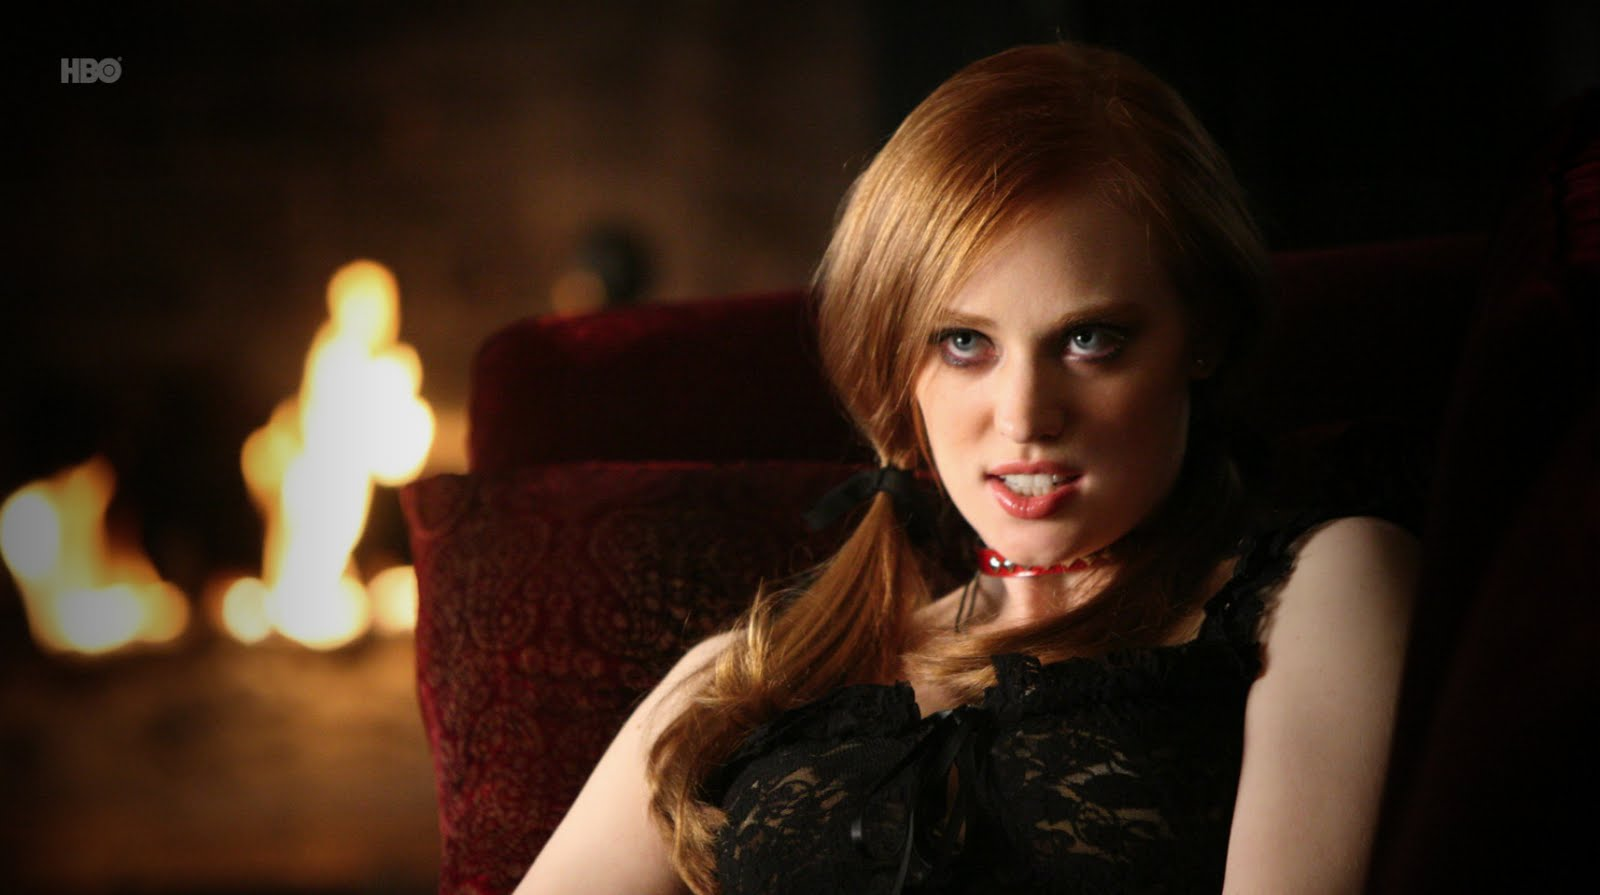 Wallpapercarnewmodel Deborah Ann Woll Hd Wallpapers True Blood